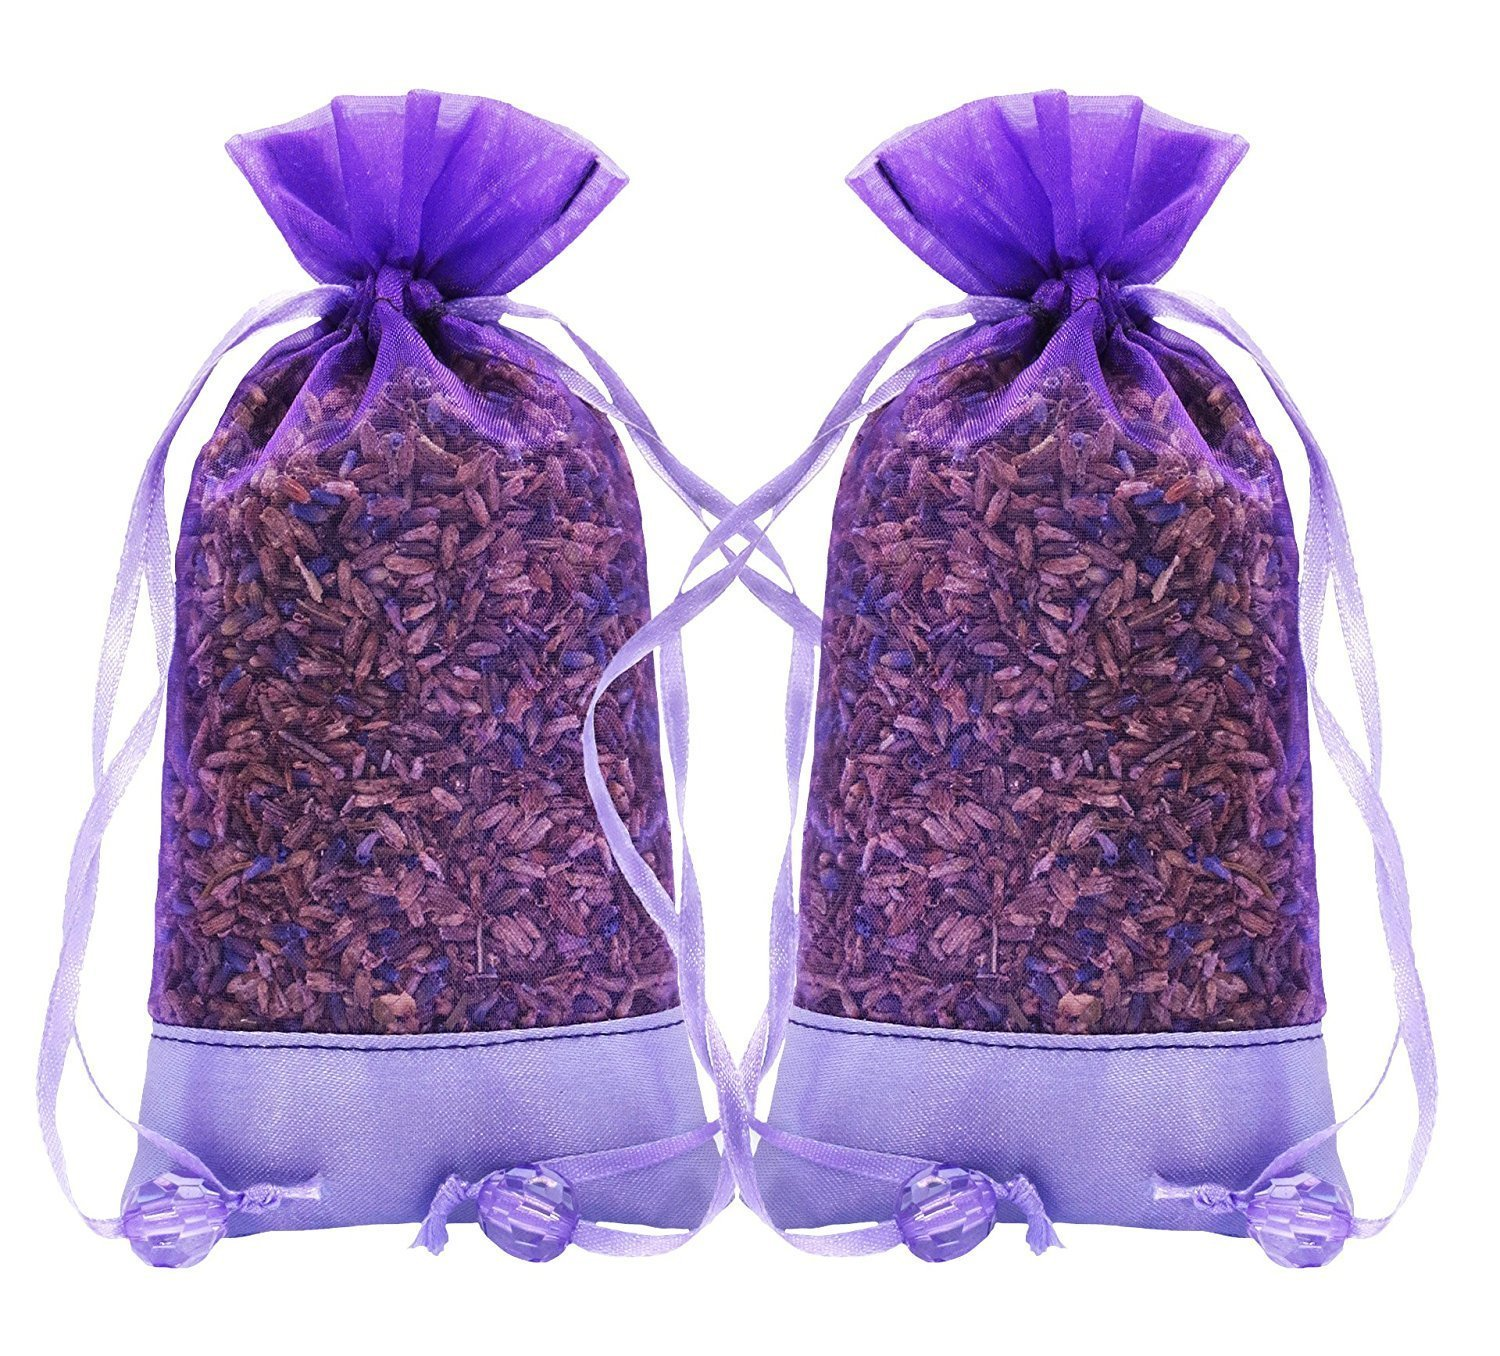 Lavender Natural Air Freshener for Closet, Drawer, Car, Room - 2 Packs of 30 Grams Cozy Pouch Sachets Filled with Dried French Lavender Buds